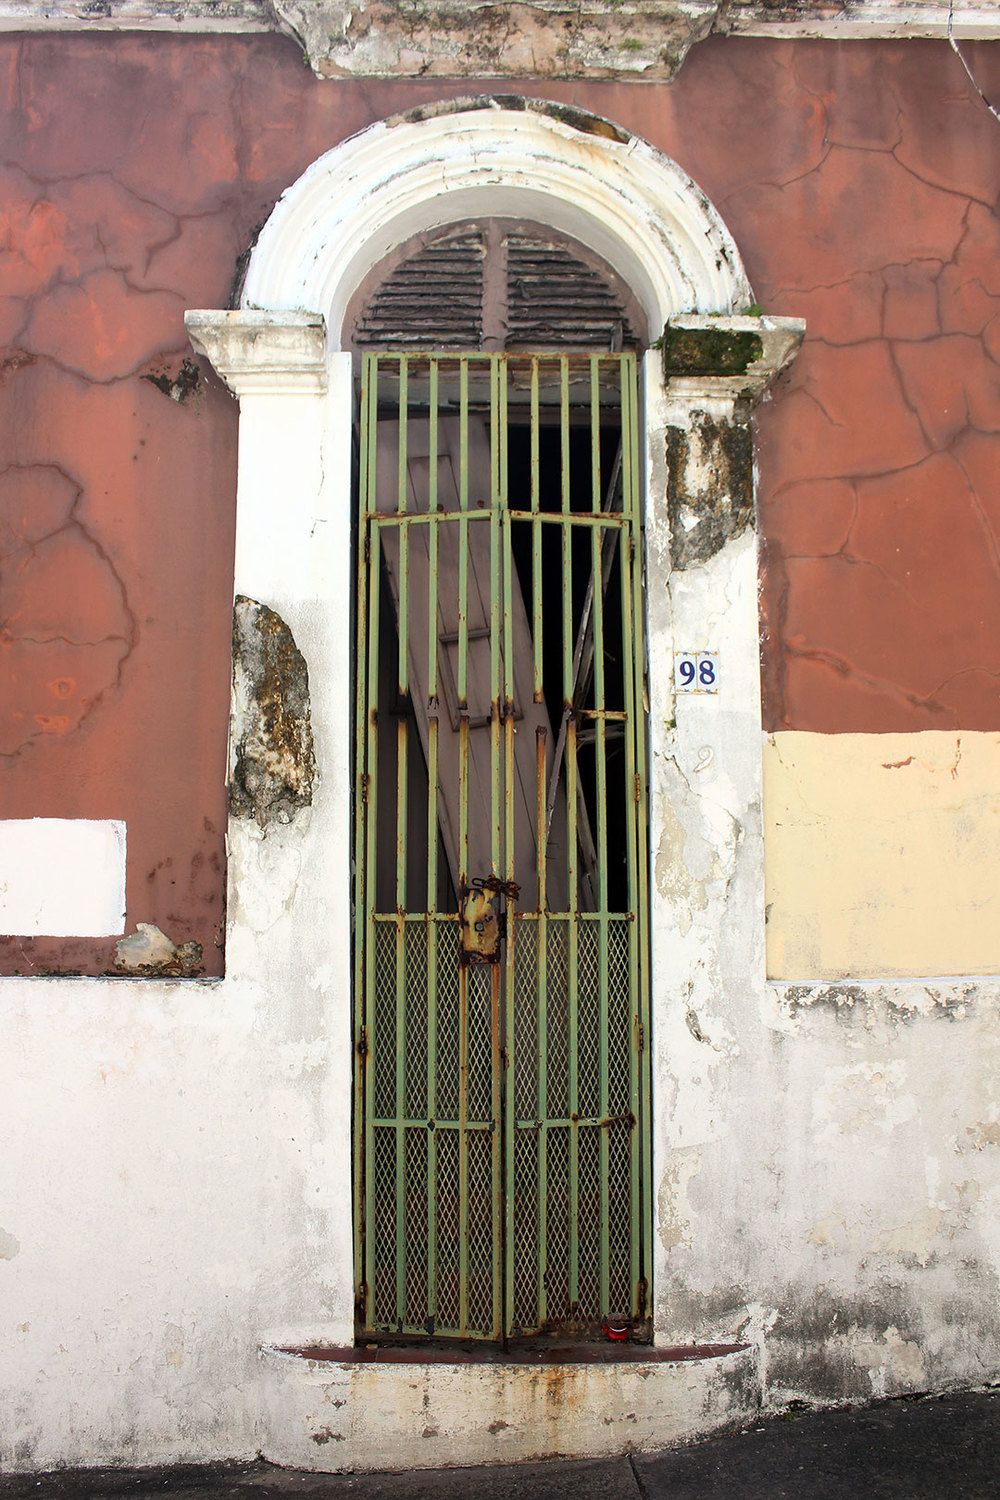 While there were many lavish and new buildings, I really gravitated toward the rusty ironwork of these more dilapidated doors and entryways.